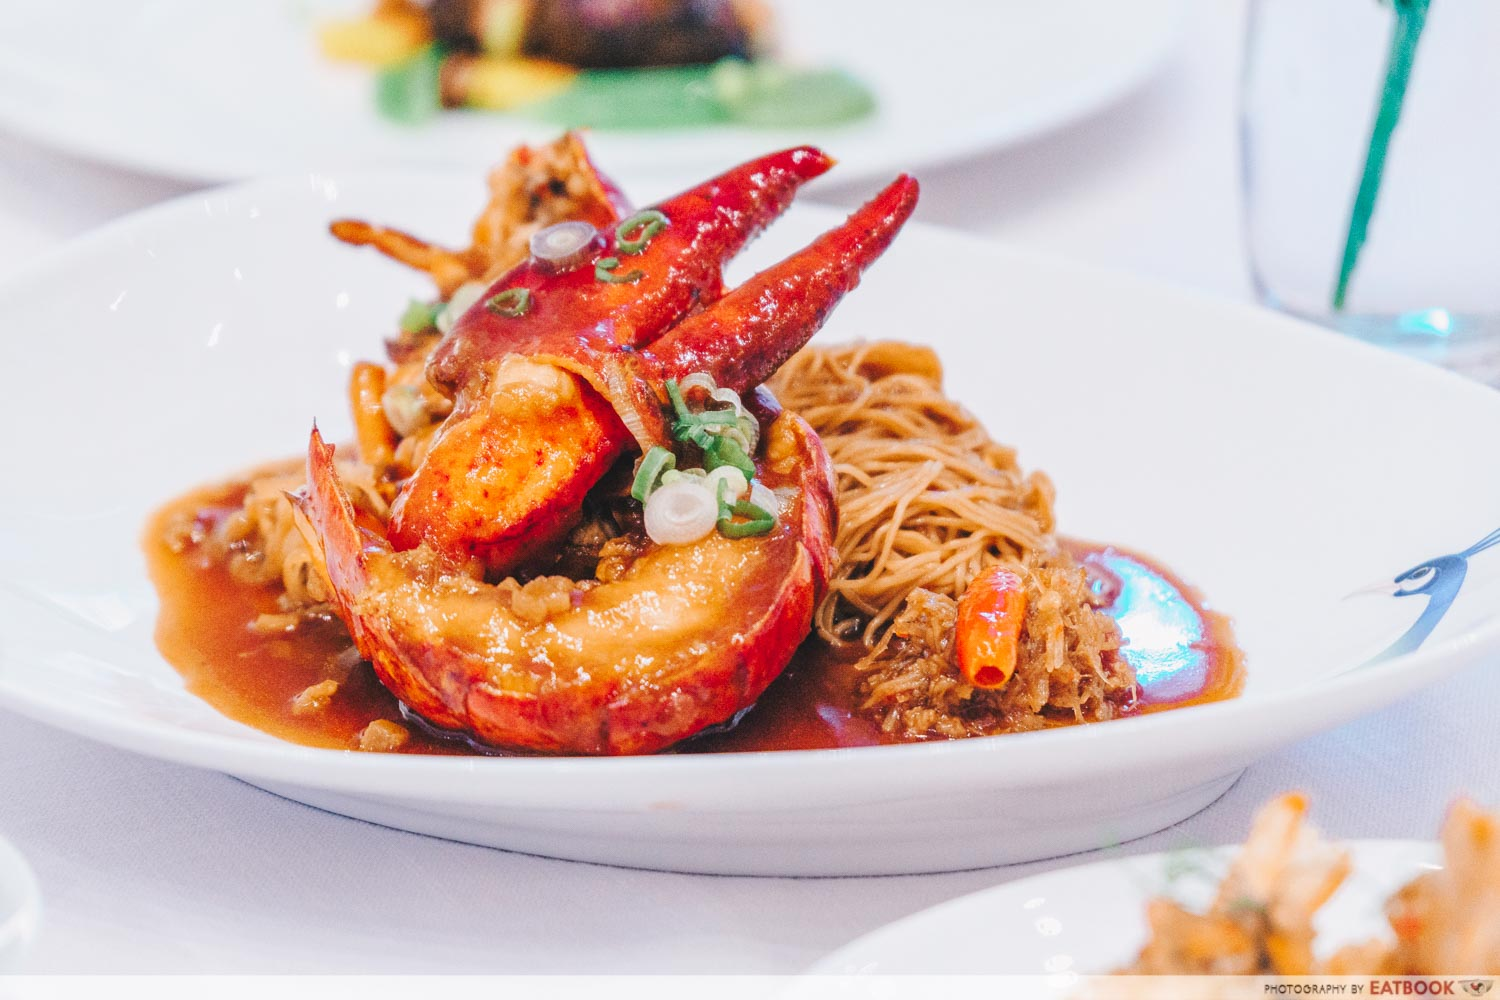 maybank michelin chinese restaurants Simmered Egg Noodles With Live Boston Lobster And Housemade X.O Chilli Sauce